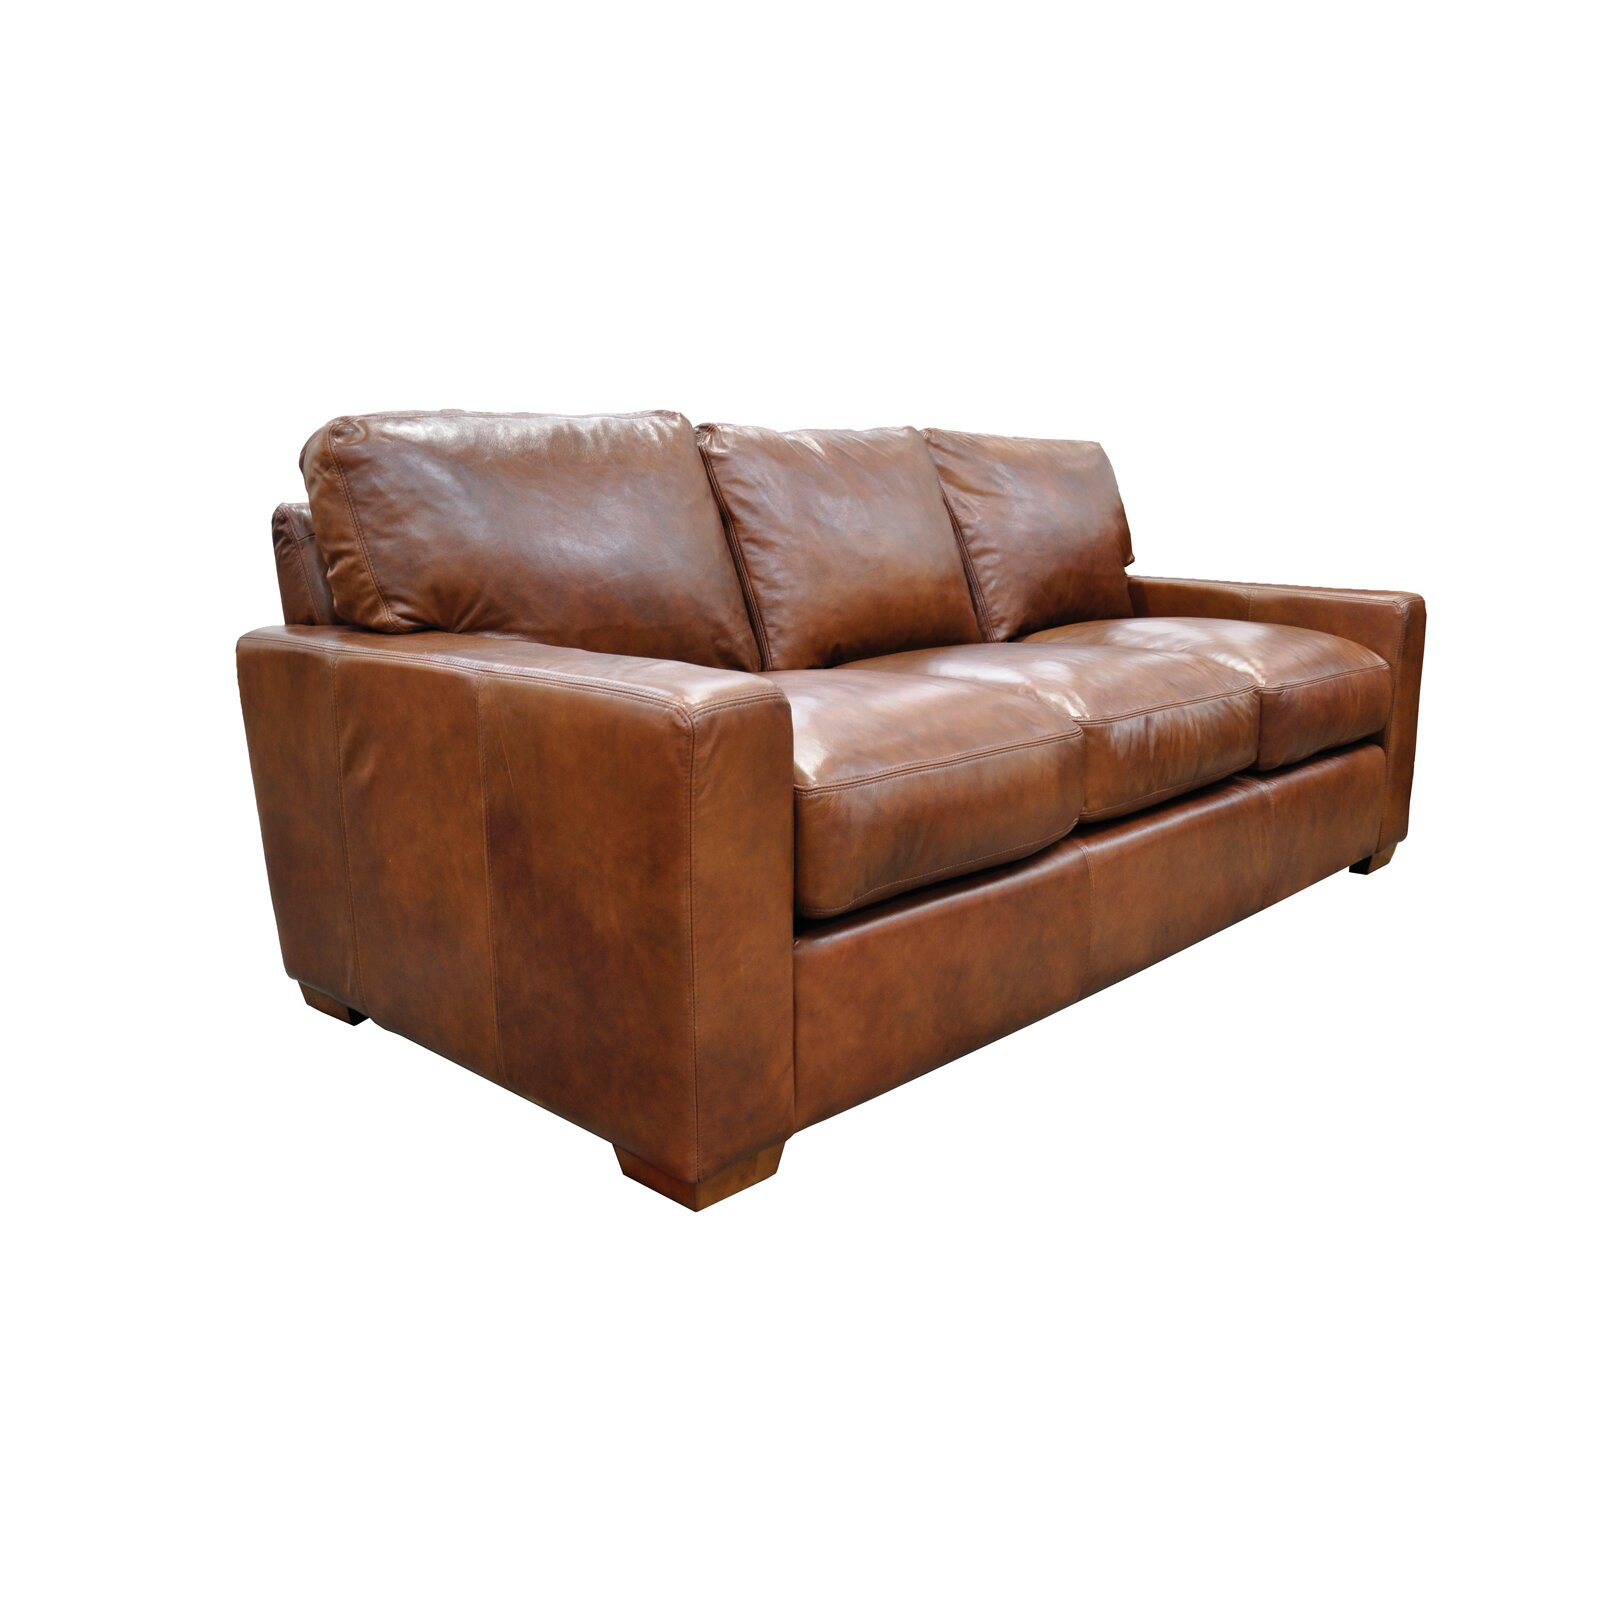 Omnia Leather City Craft Leather Sofa Reviews